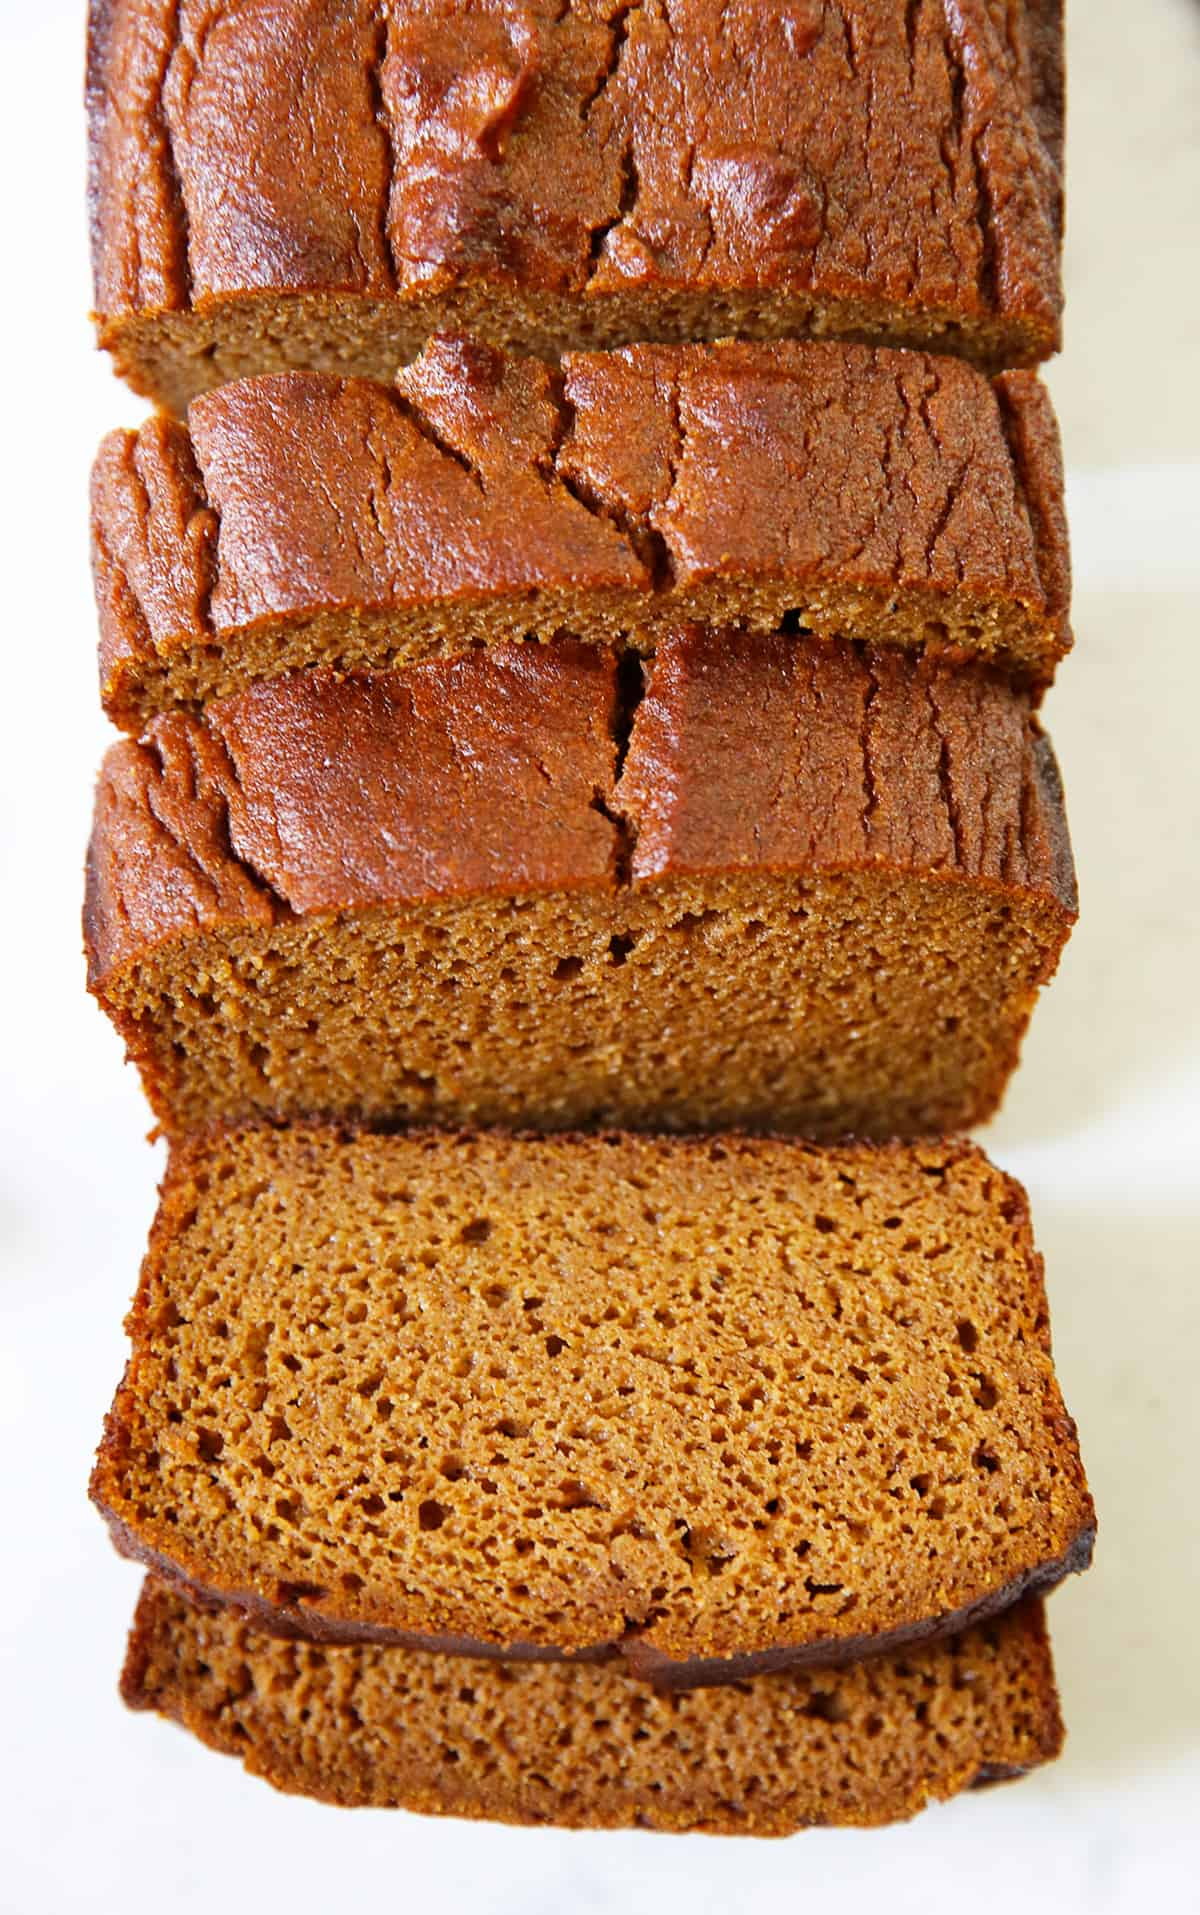 Sliced gluten free pumpkin bread